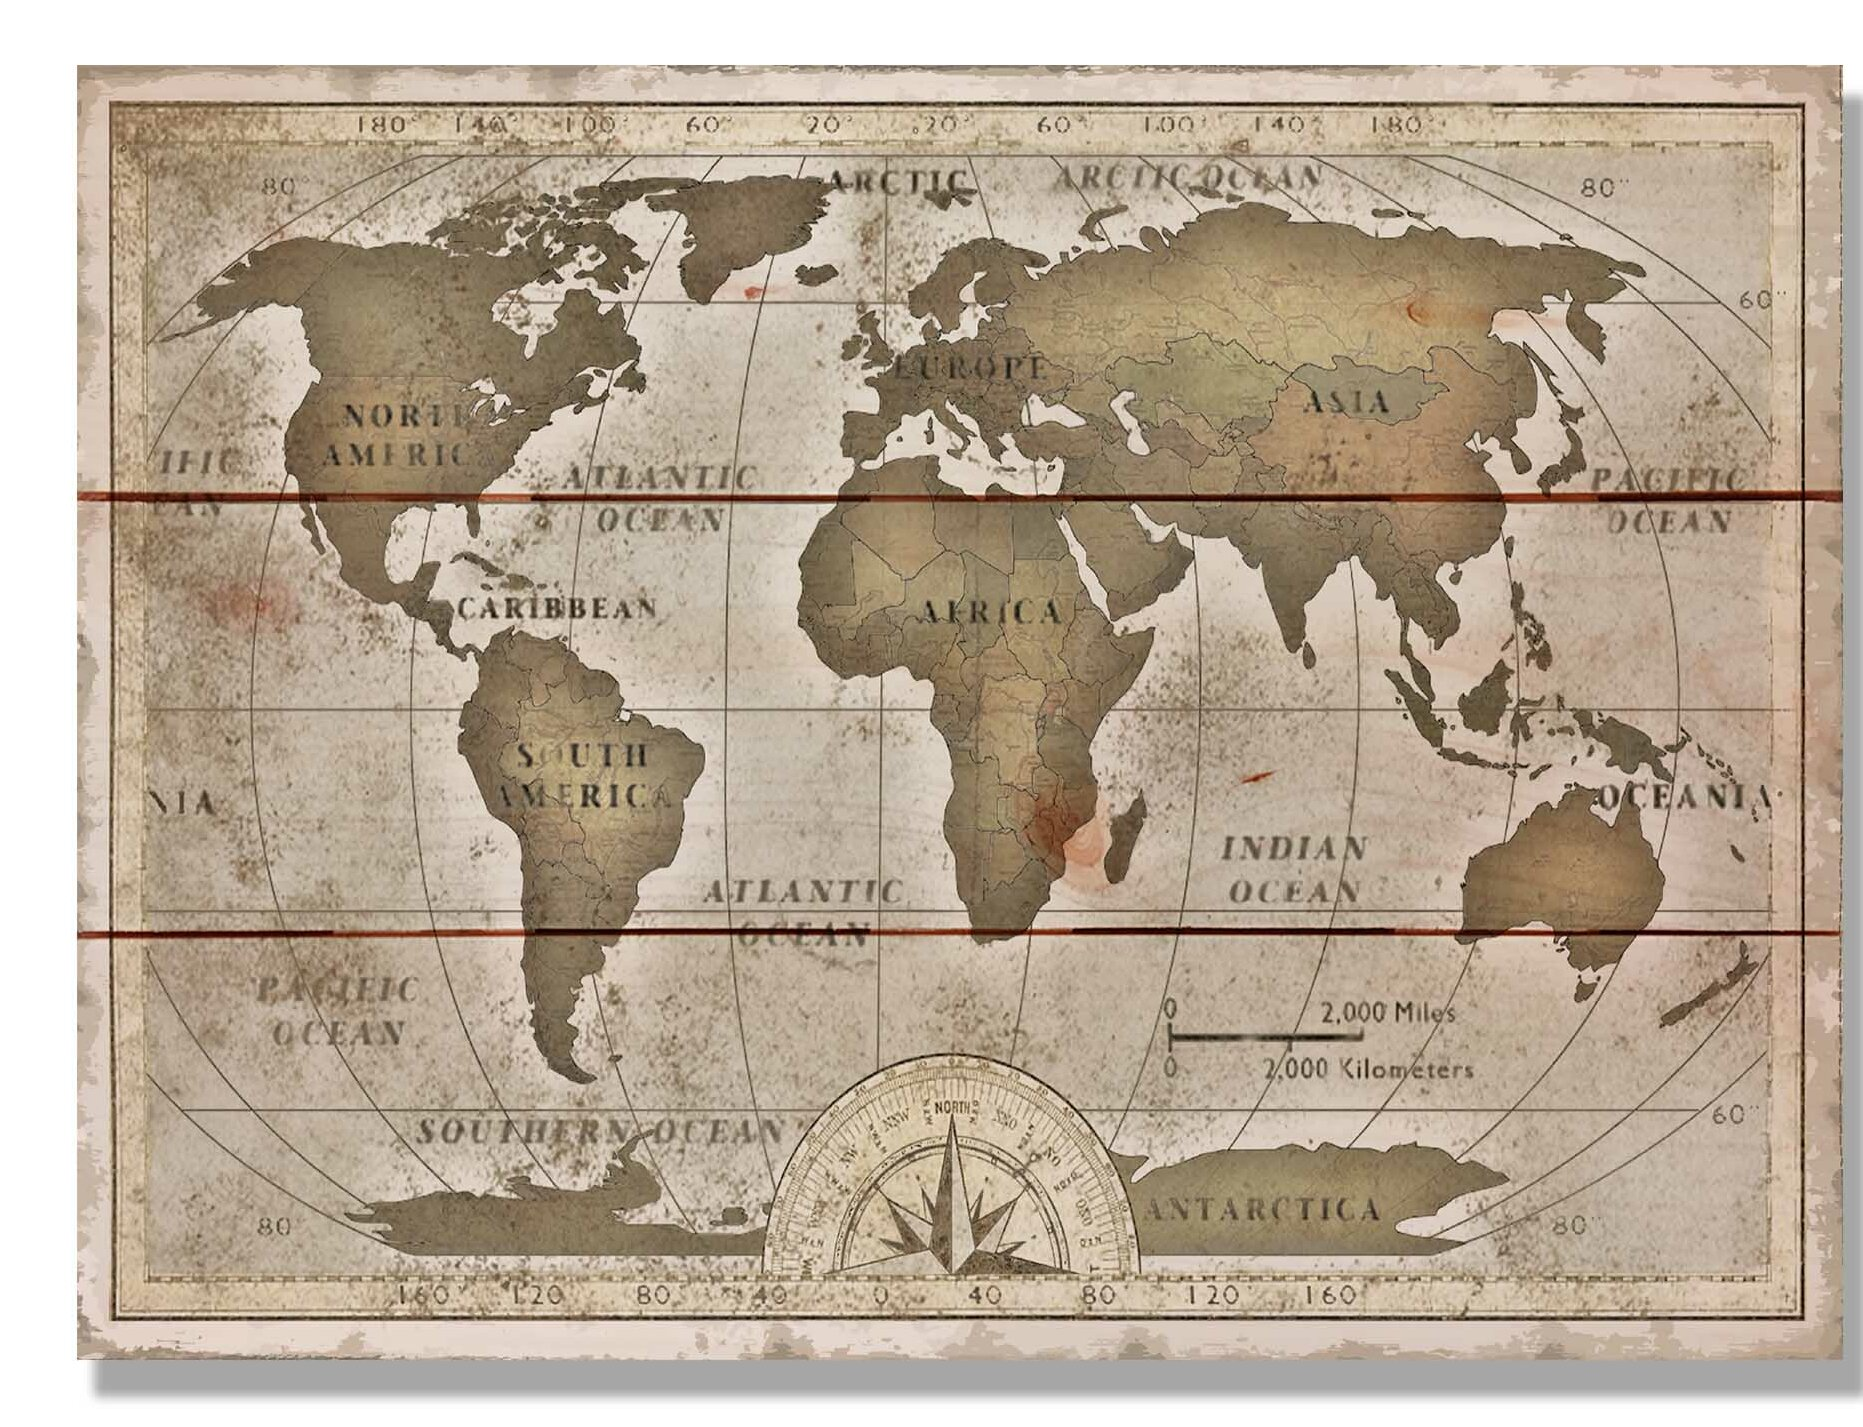 Old World Map Daydream HQ 'Old World Map' Graphic Art on Wood | eBay Old World Map